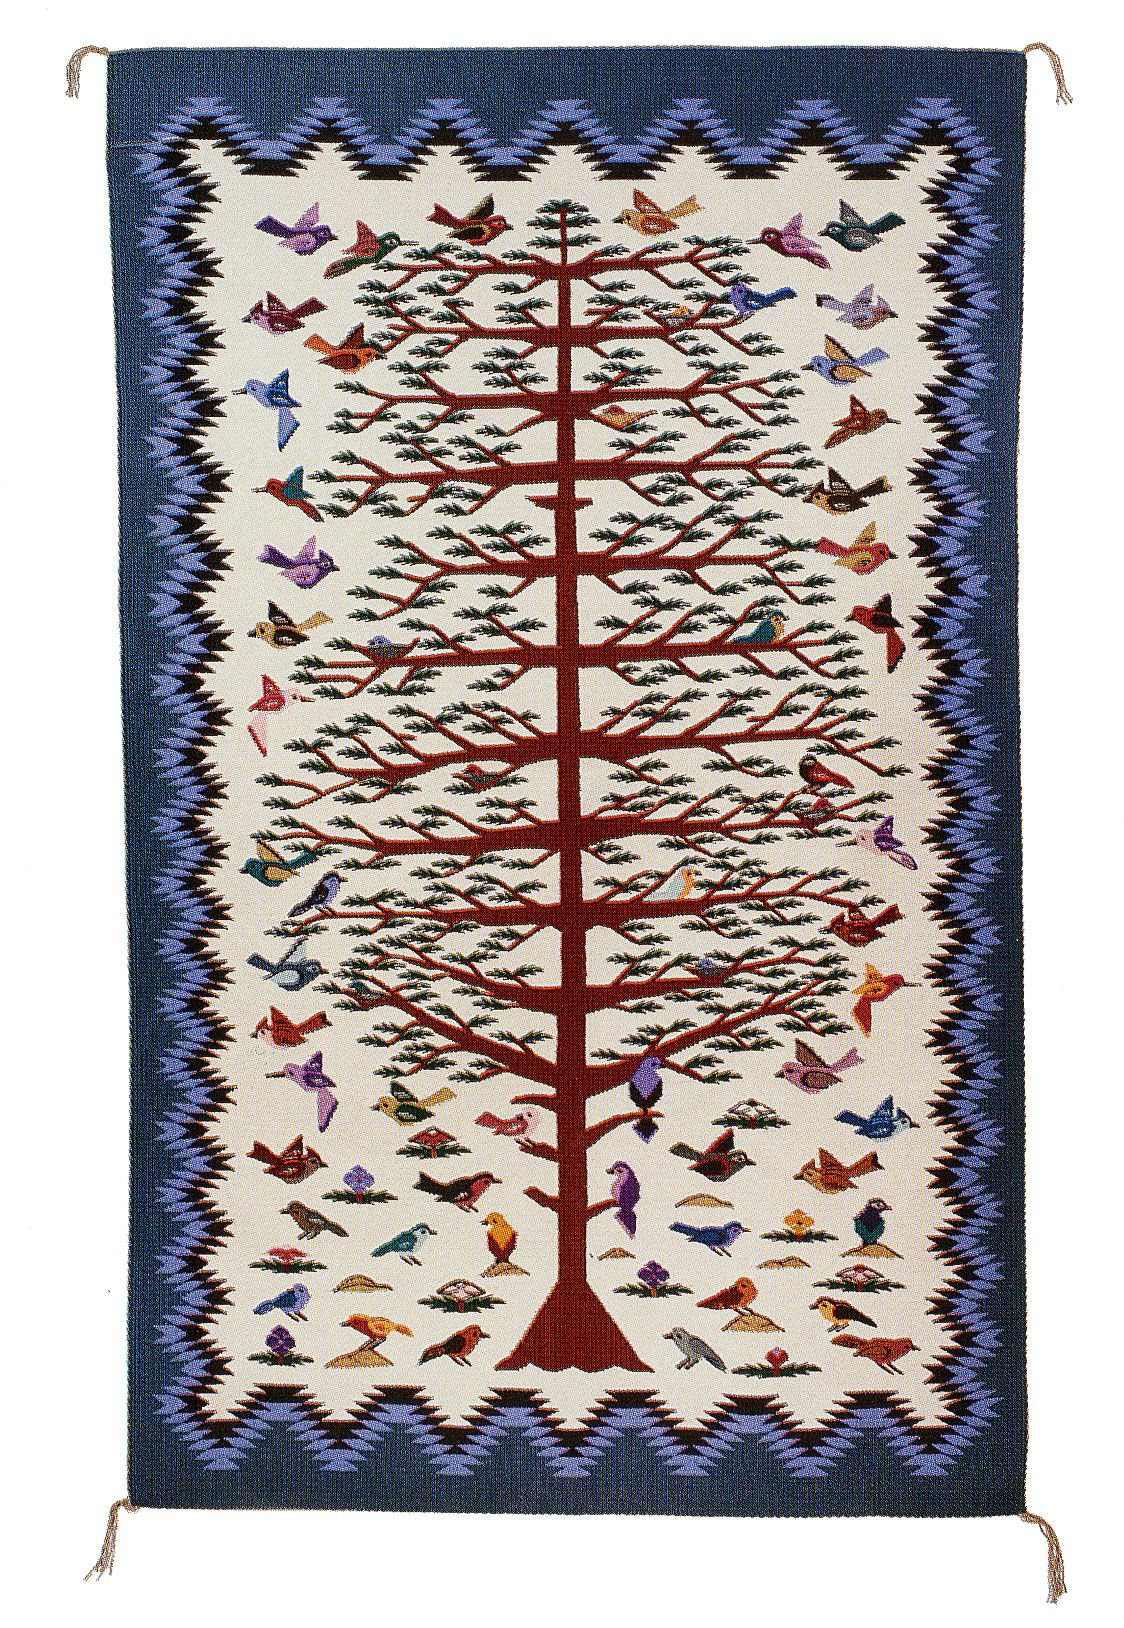 Navajo Rugs The Tree Of Life Design Portrays A Tree Of Cornstalk